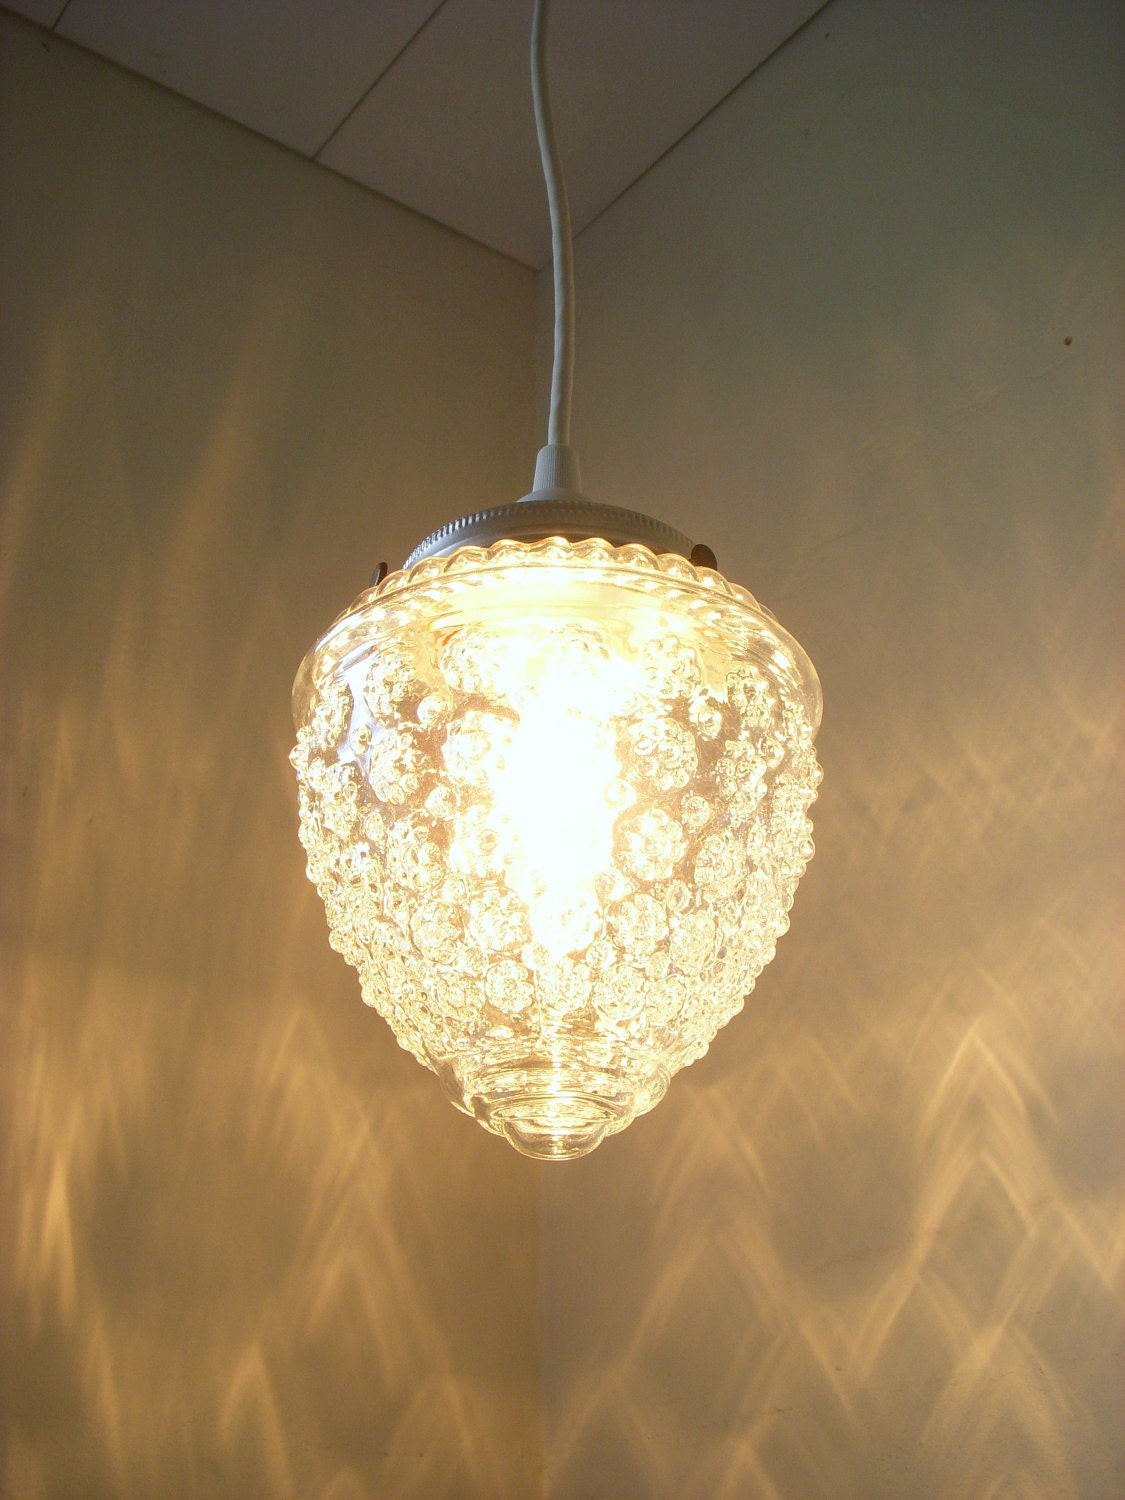 Raspberry Shaped Textured Hanging Pendant Lighting Fixture